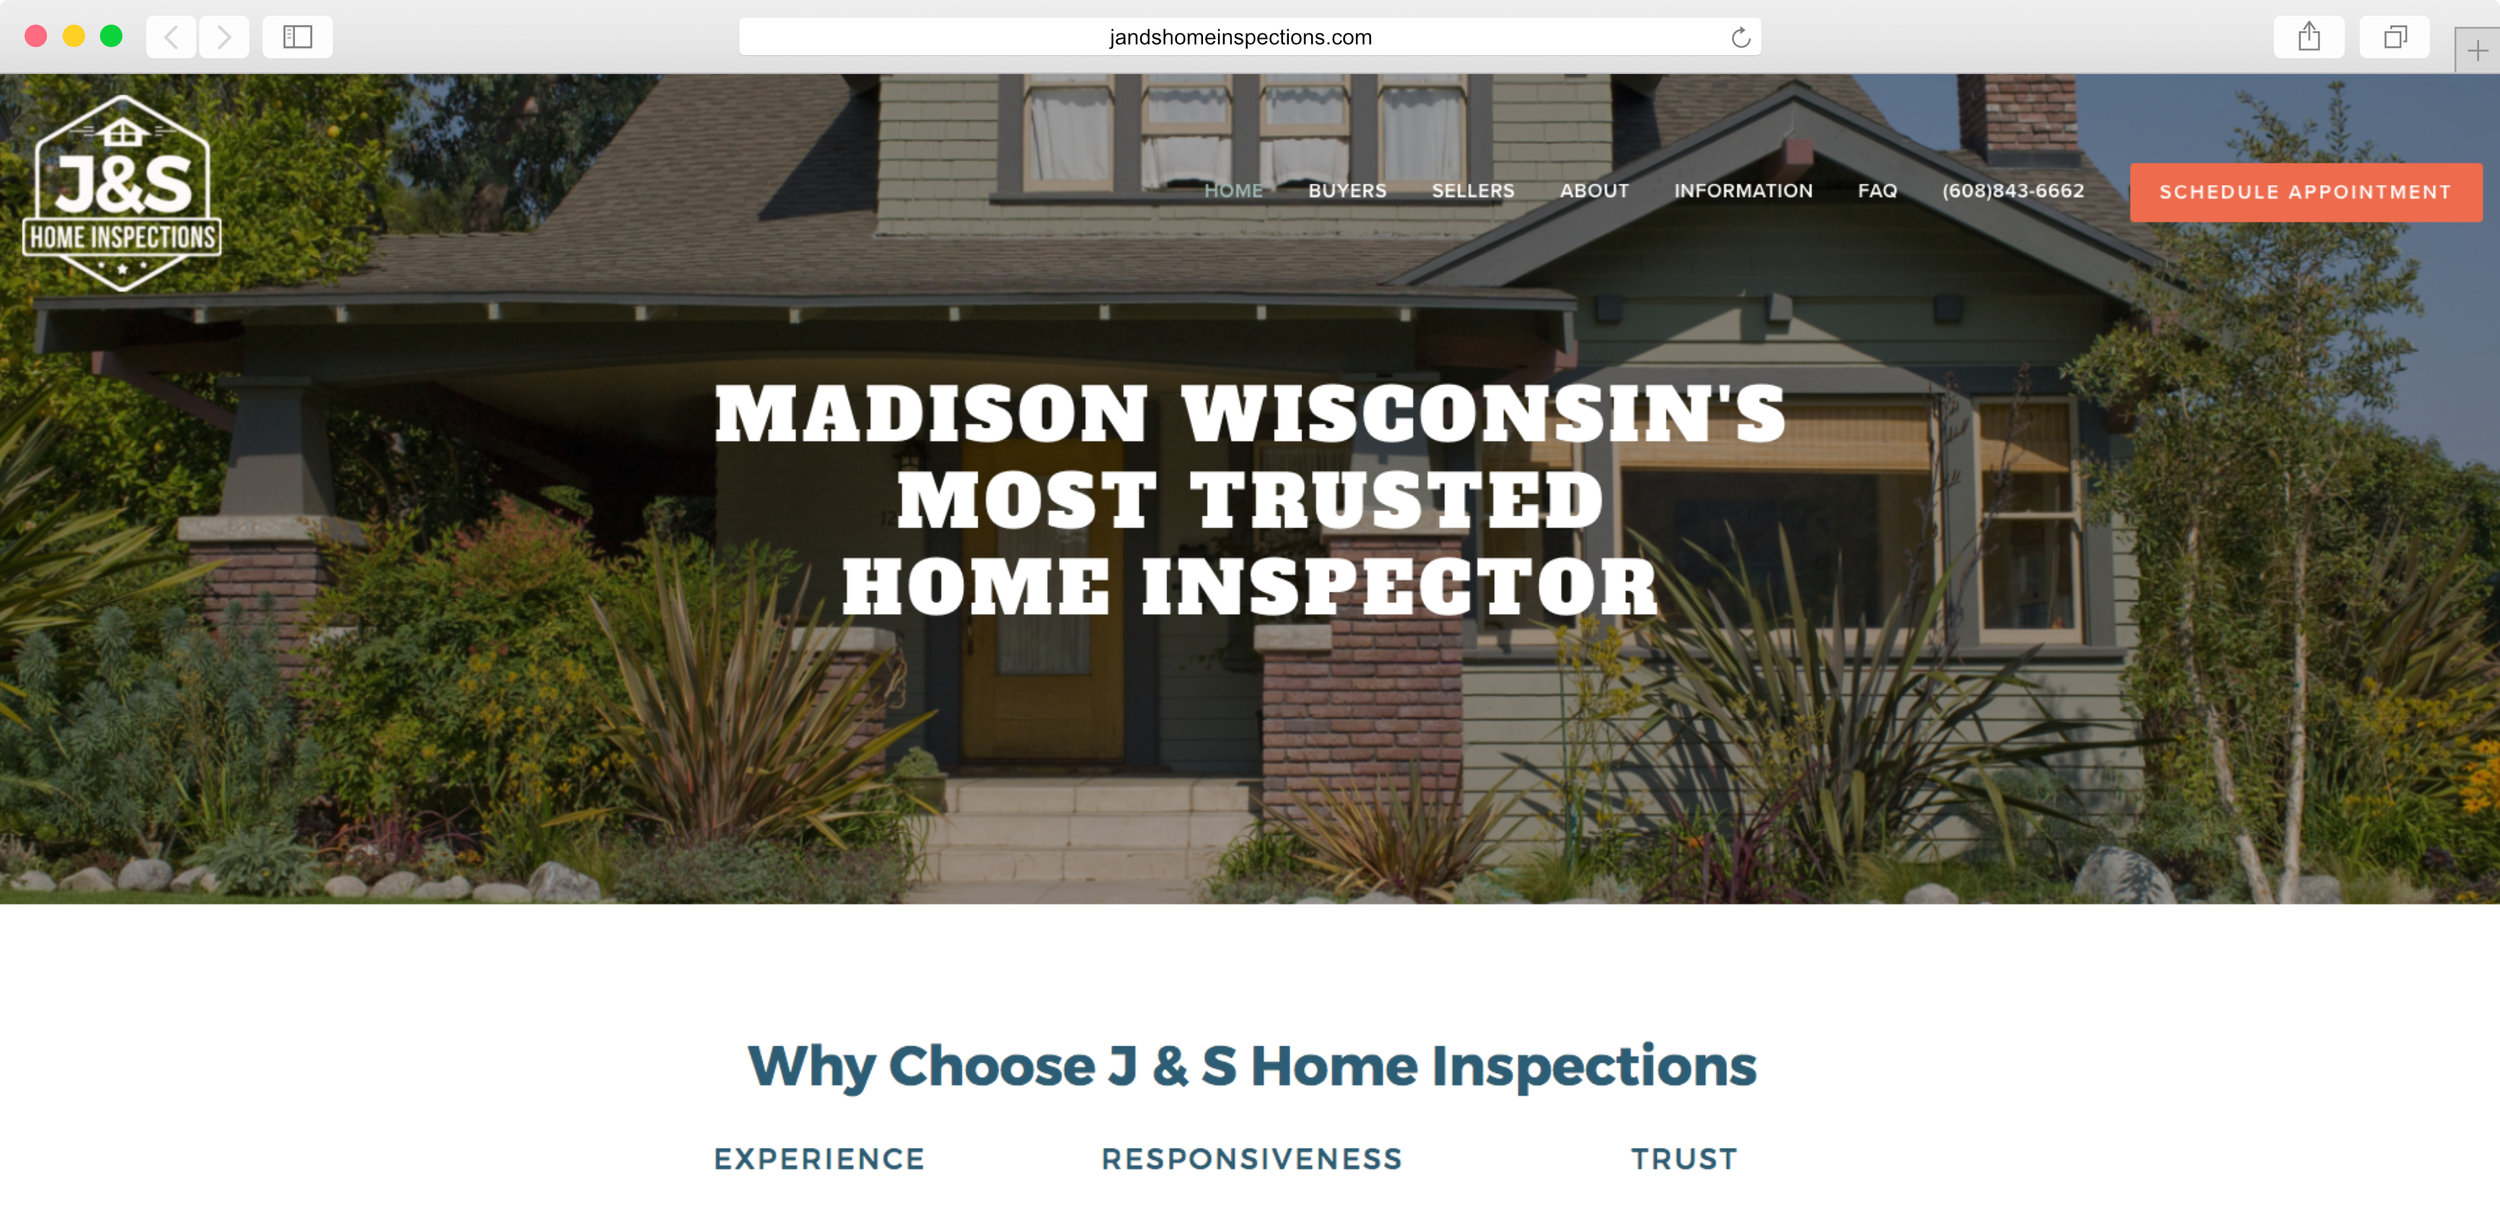 J&S Home Inspections